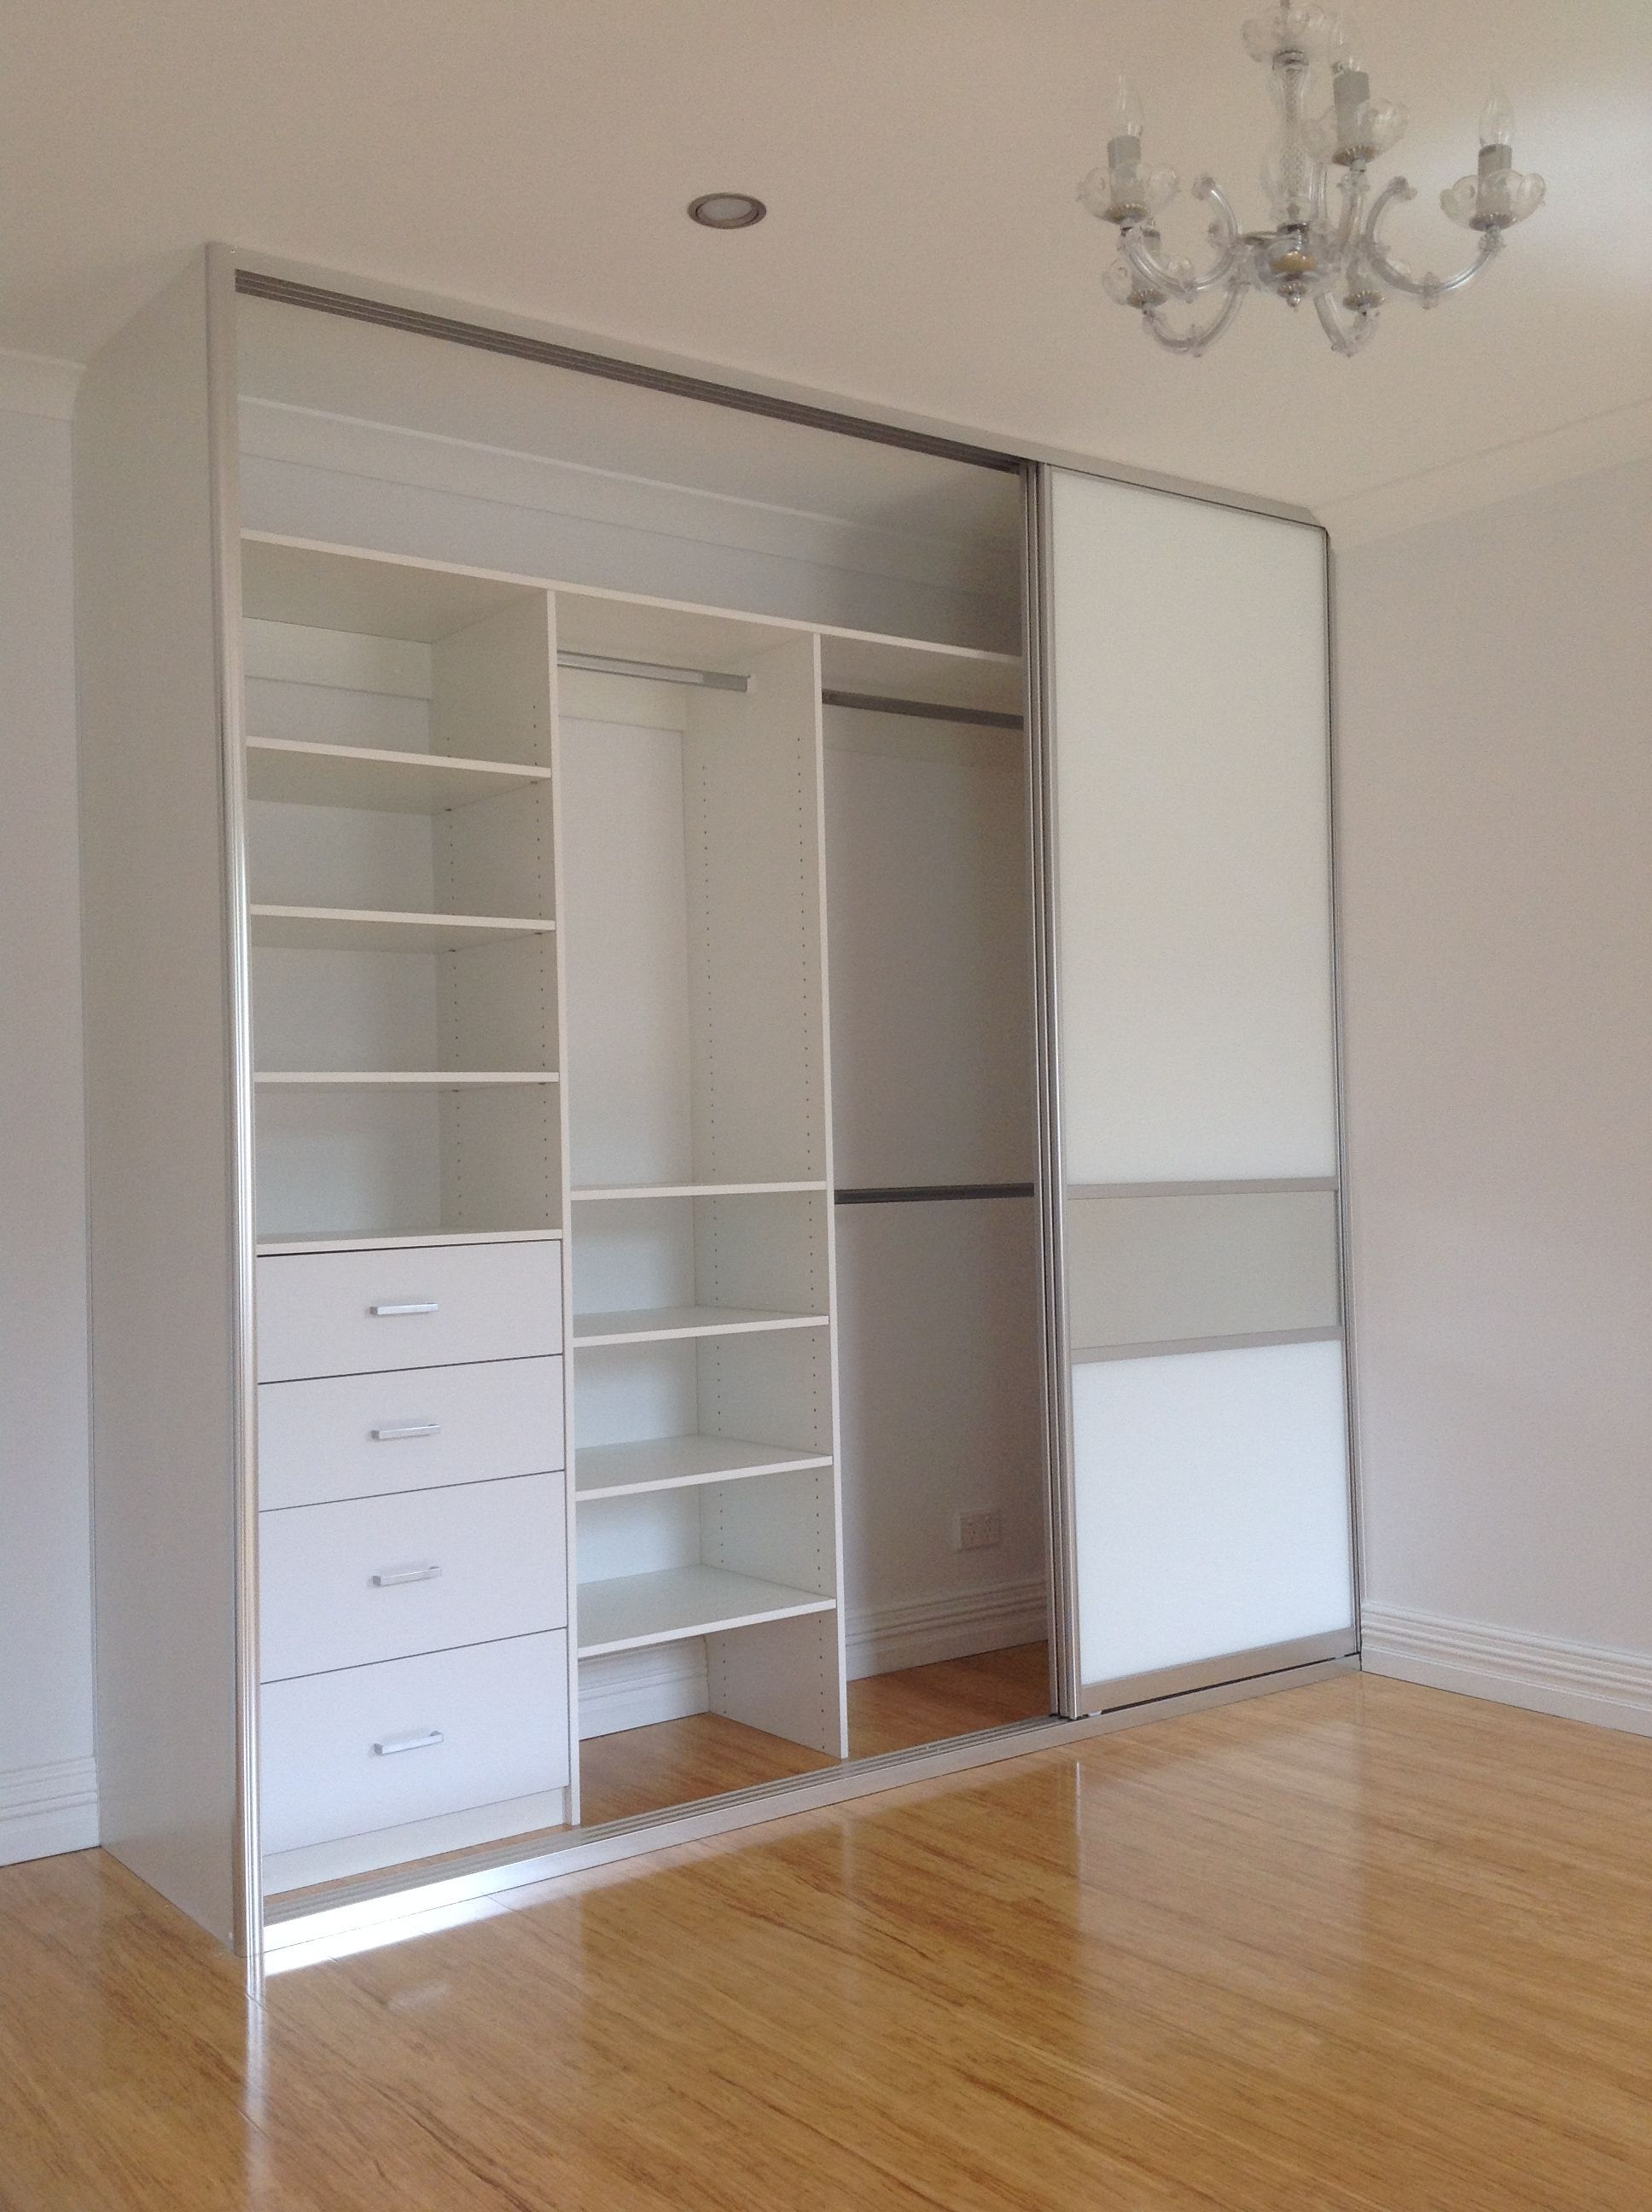 Please View Through Our Gallery Of Built In Wardrobe Pictures As We